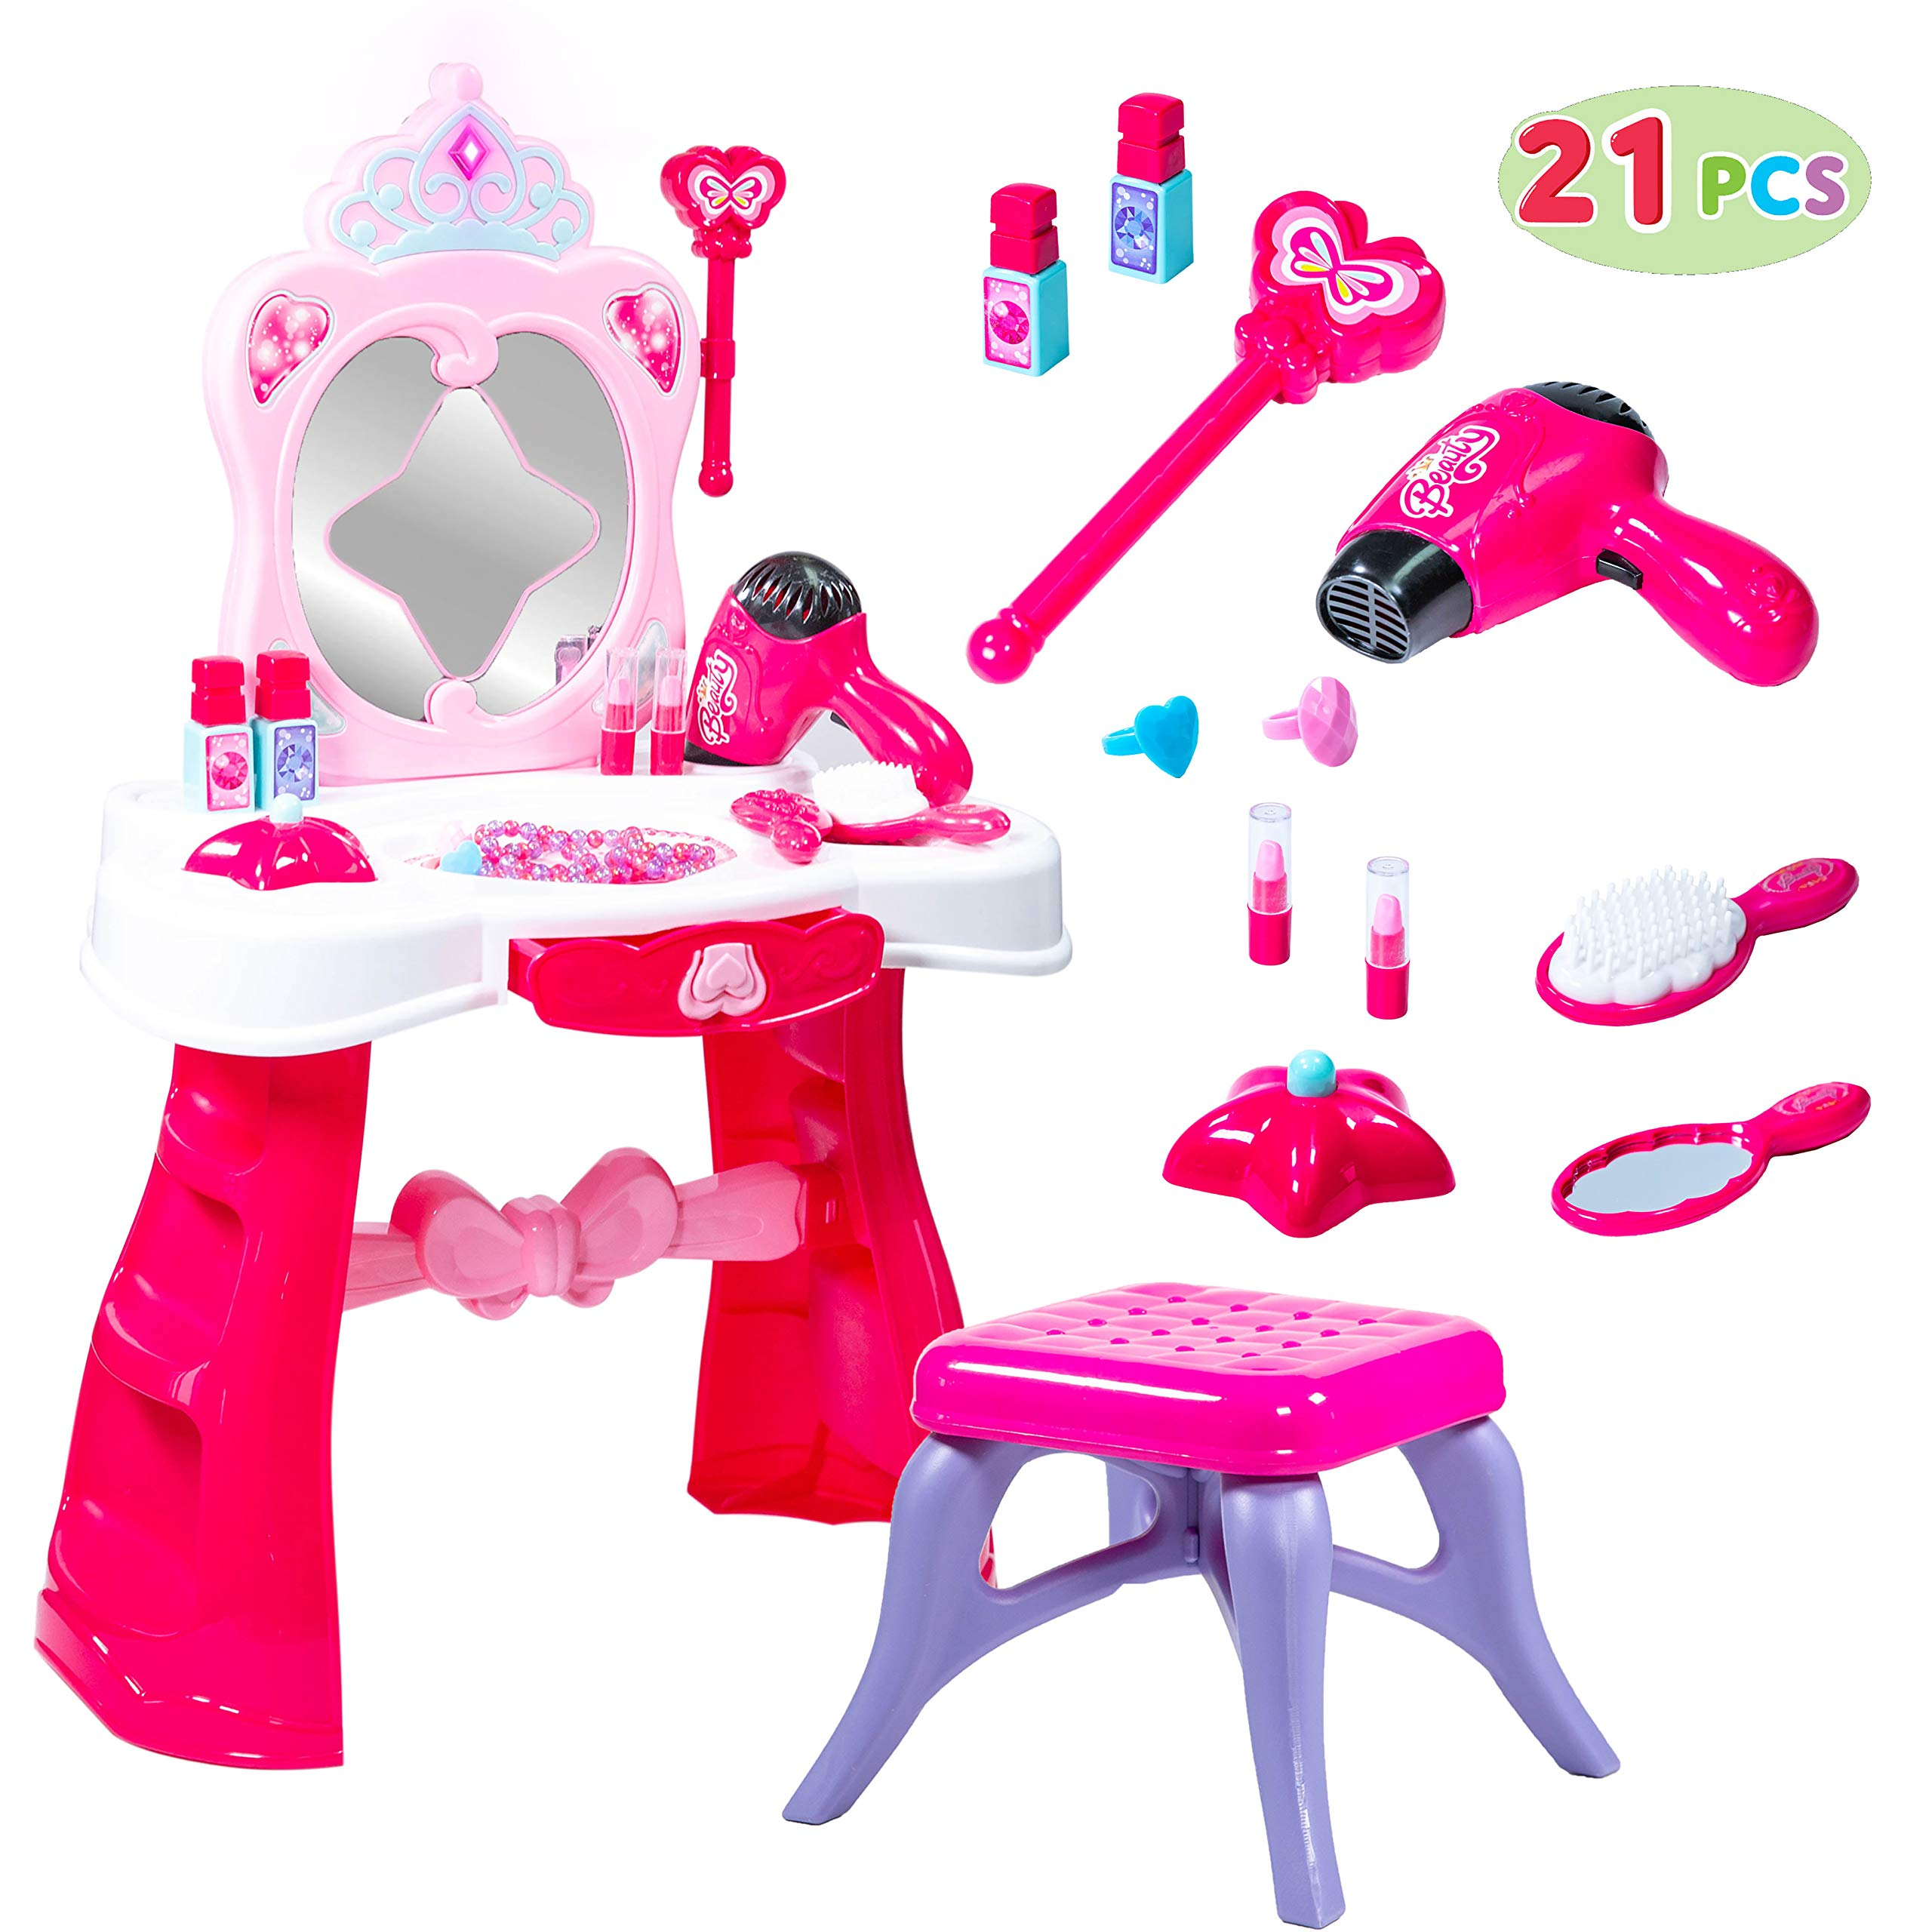 JOYIN Toddler Fantasy Vanity Beauty Dresser Table Play Set with Lights, Sounds, Chair, Fashion & Makeup Accessories for Kid and Pretend Play, Toy for 2,3,4 yrs Kids by JOYIN